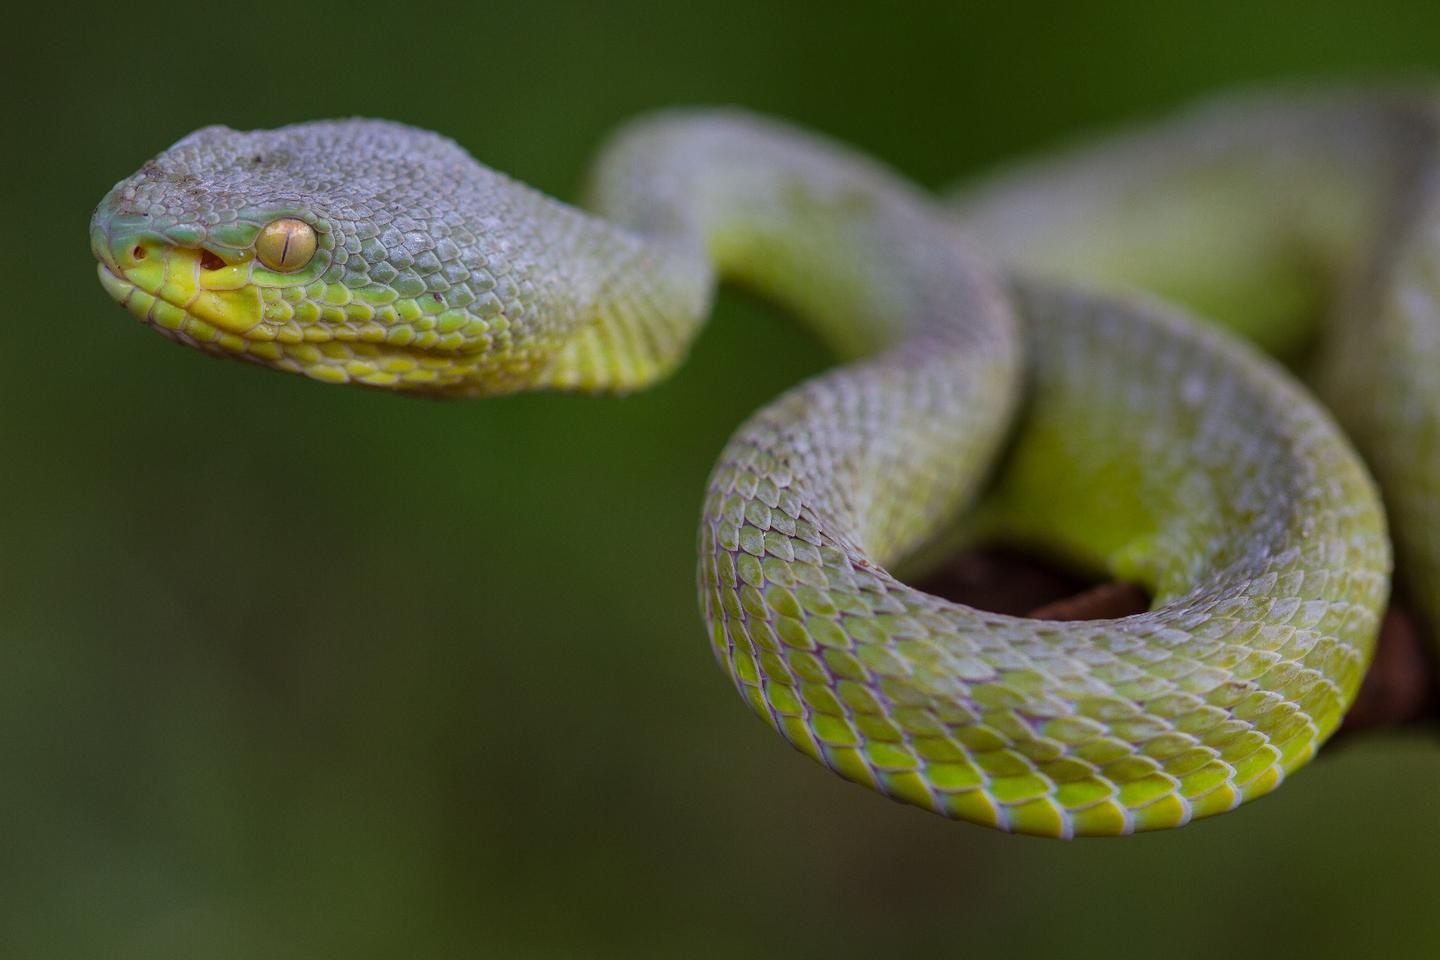 Using a system very similar to the way pit vipers sense the body heat of their prey, a new type of artificial skin may respond to temperature changes